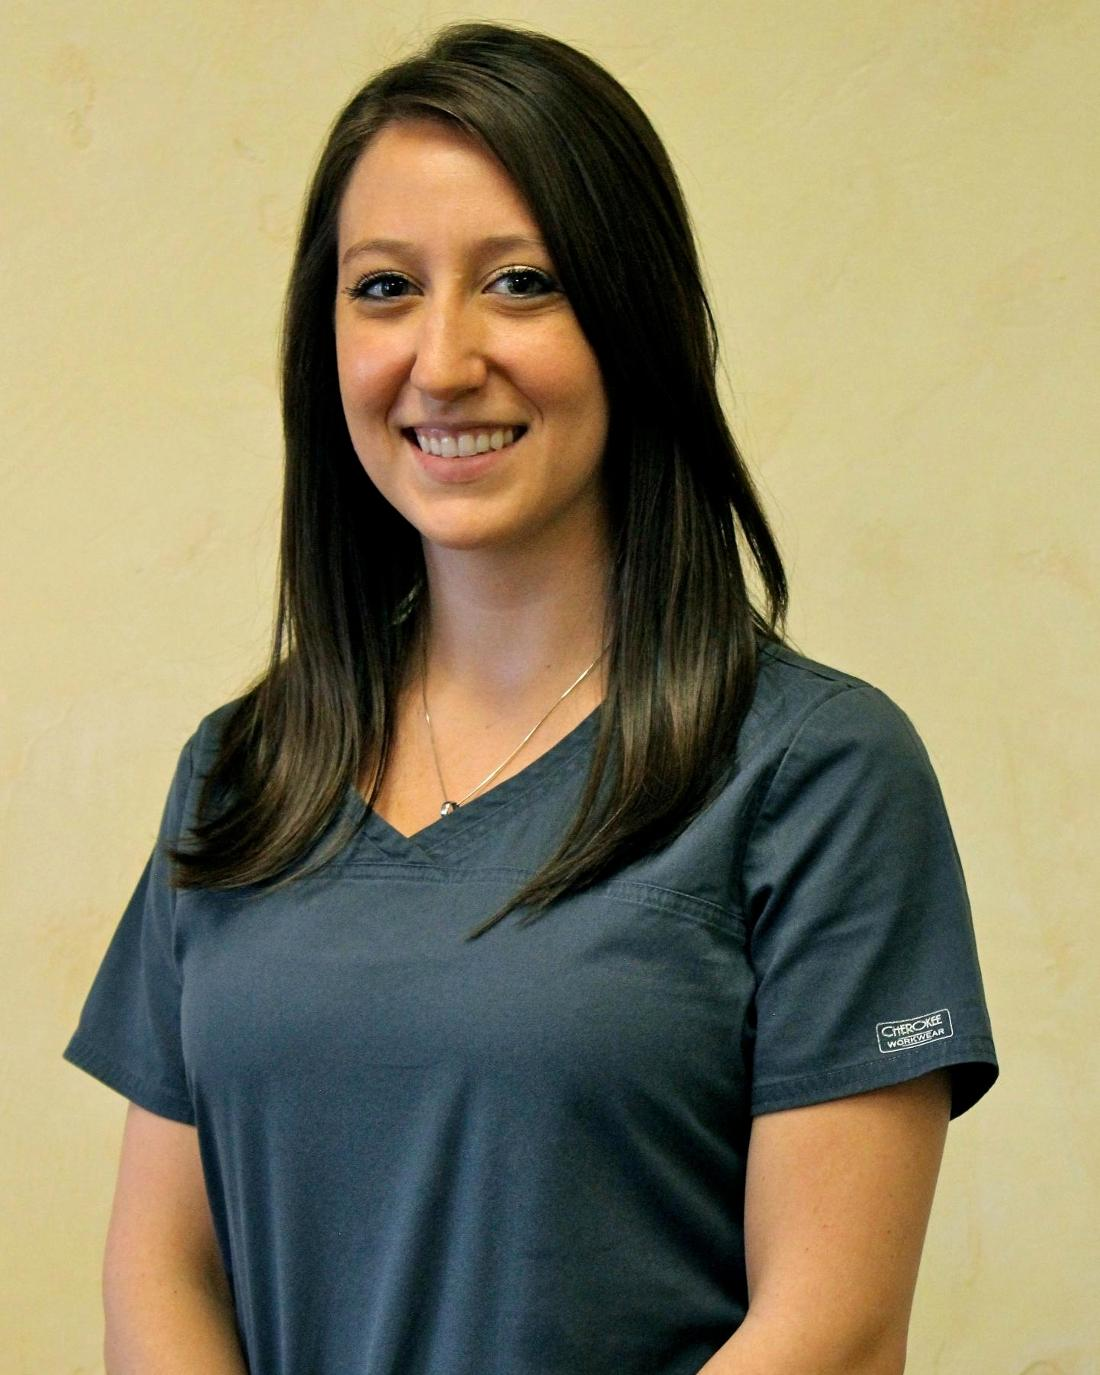 Headshot of Brittany Stagg a dental hygienist at 19014 dental office